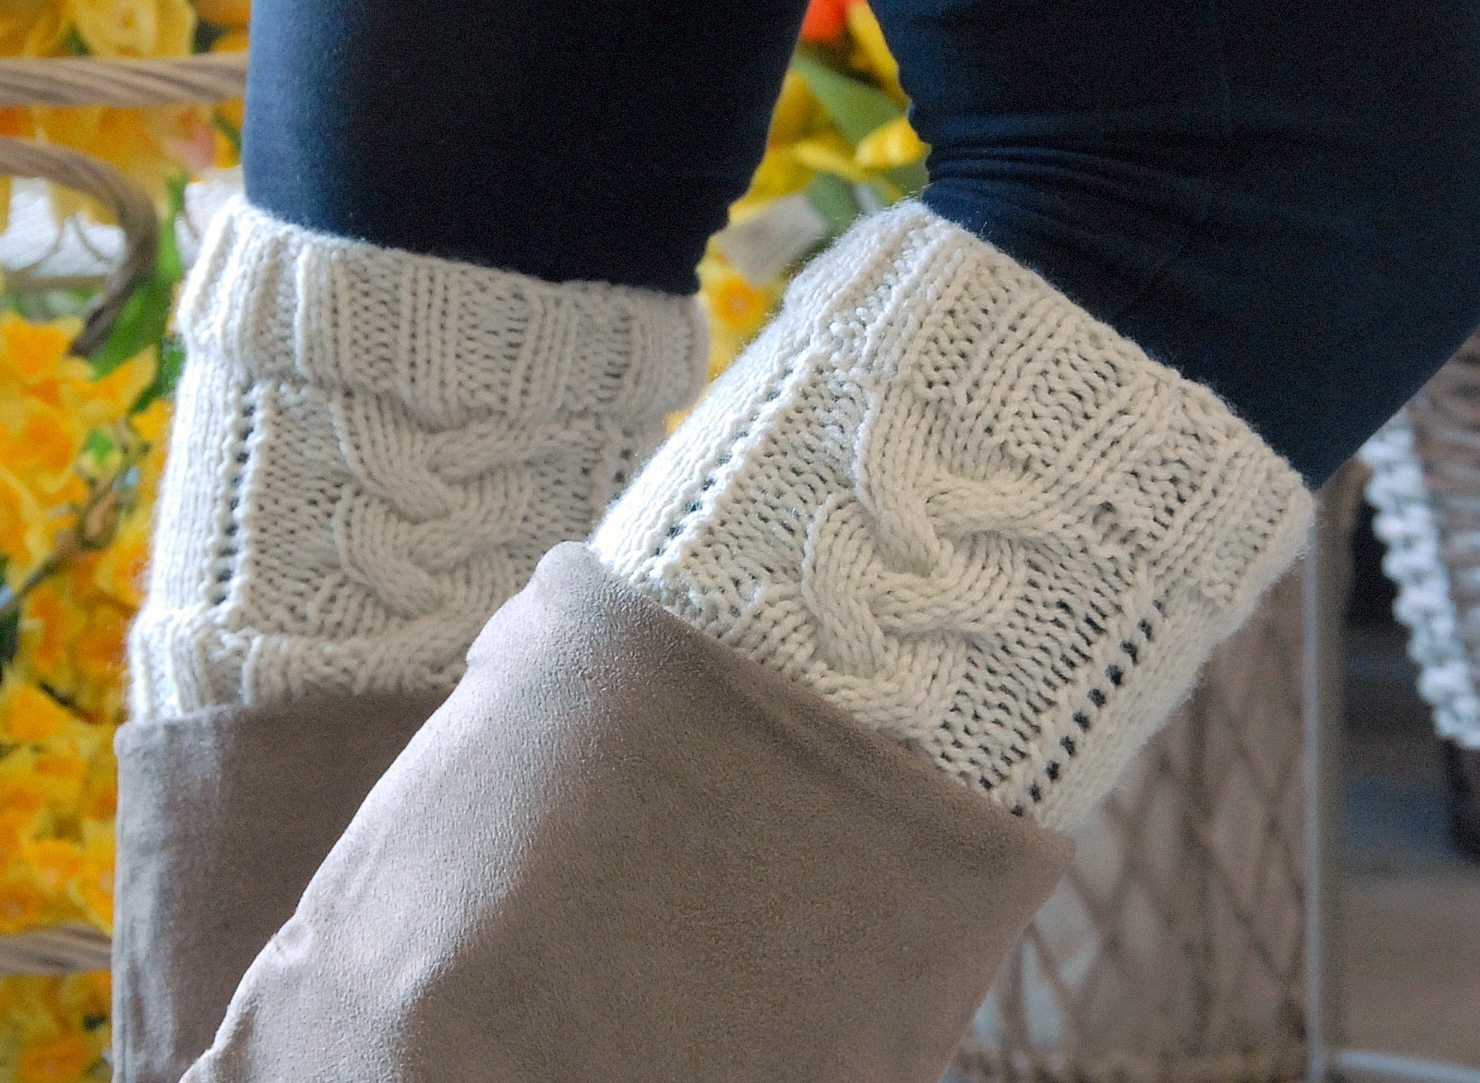 Knit Pattern For Boot Cuffs Free : Ben Franklin Crafts and Frame Shop, Monroe, WA: Knitted Boot Cuffs FREE Pattern